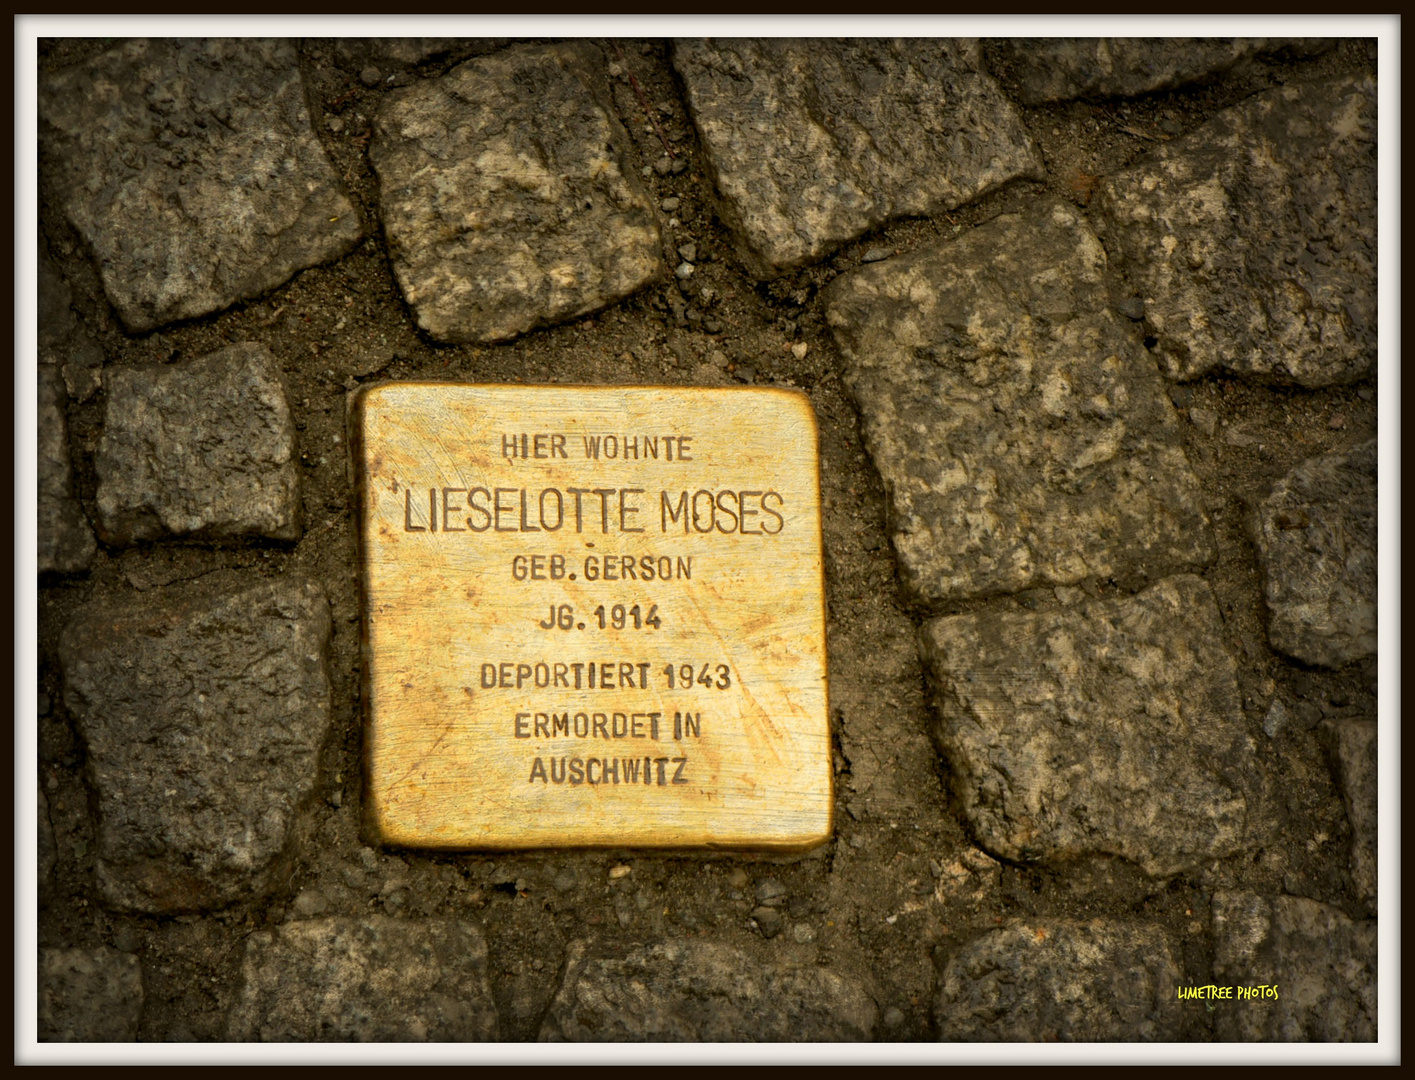 Lieselotte Moses lived here